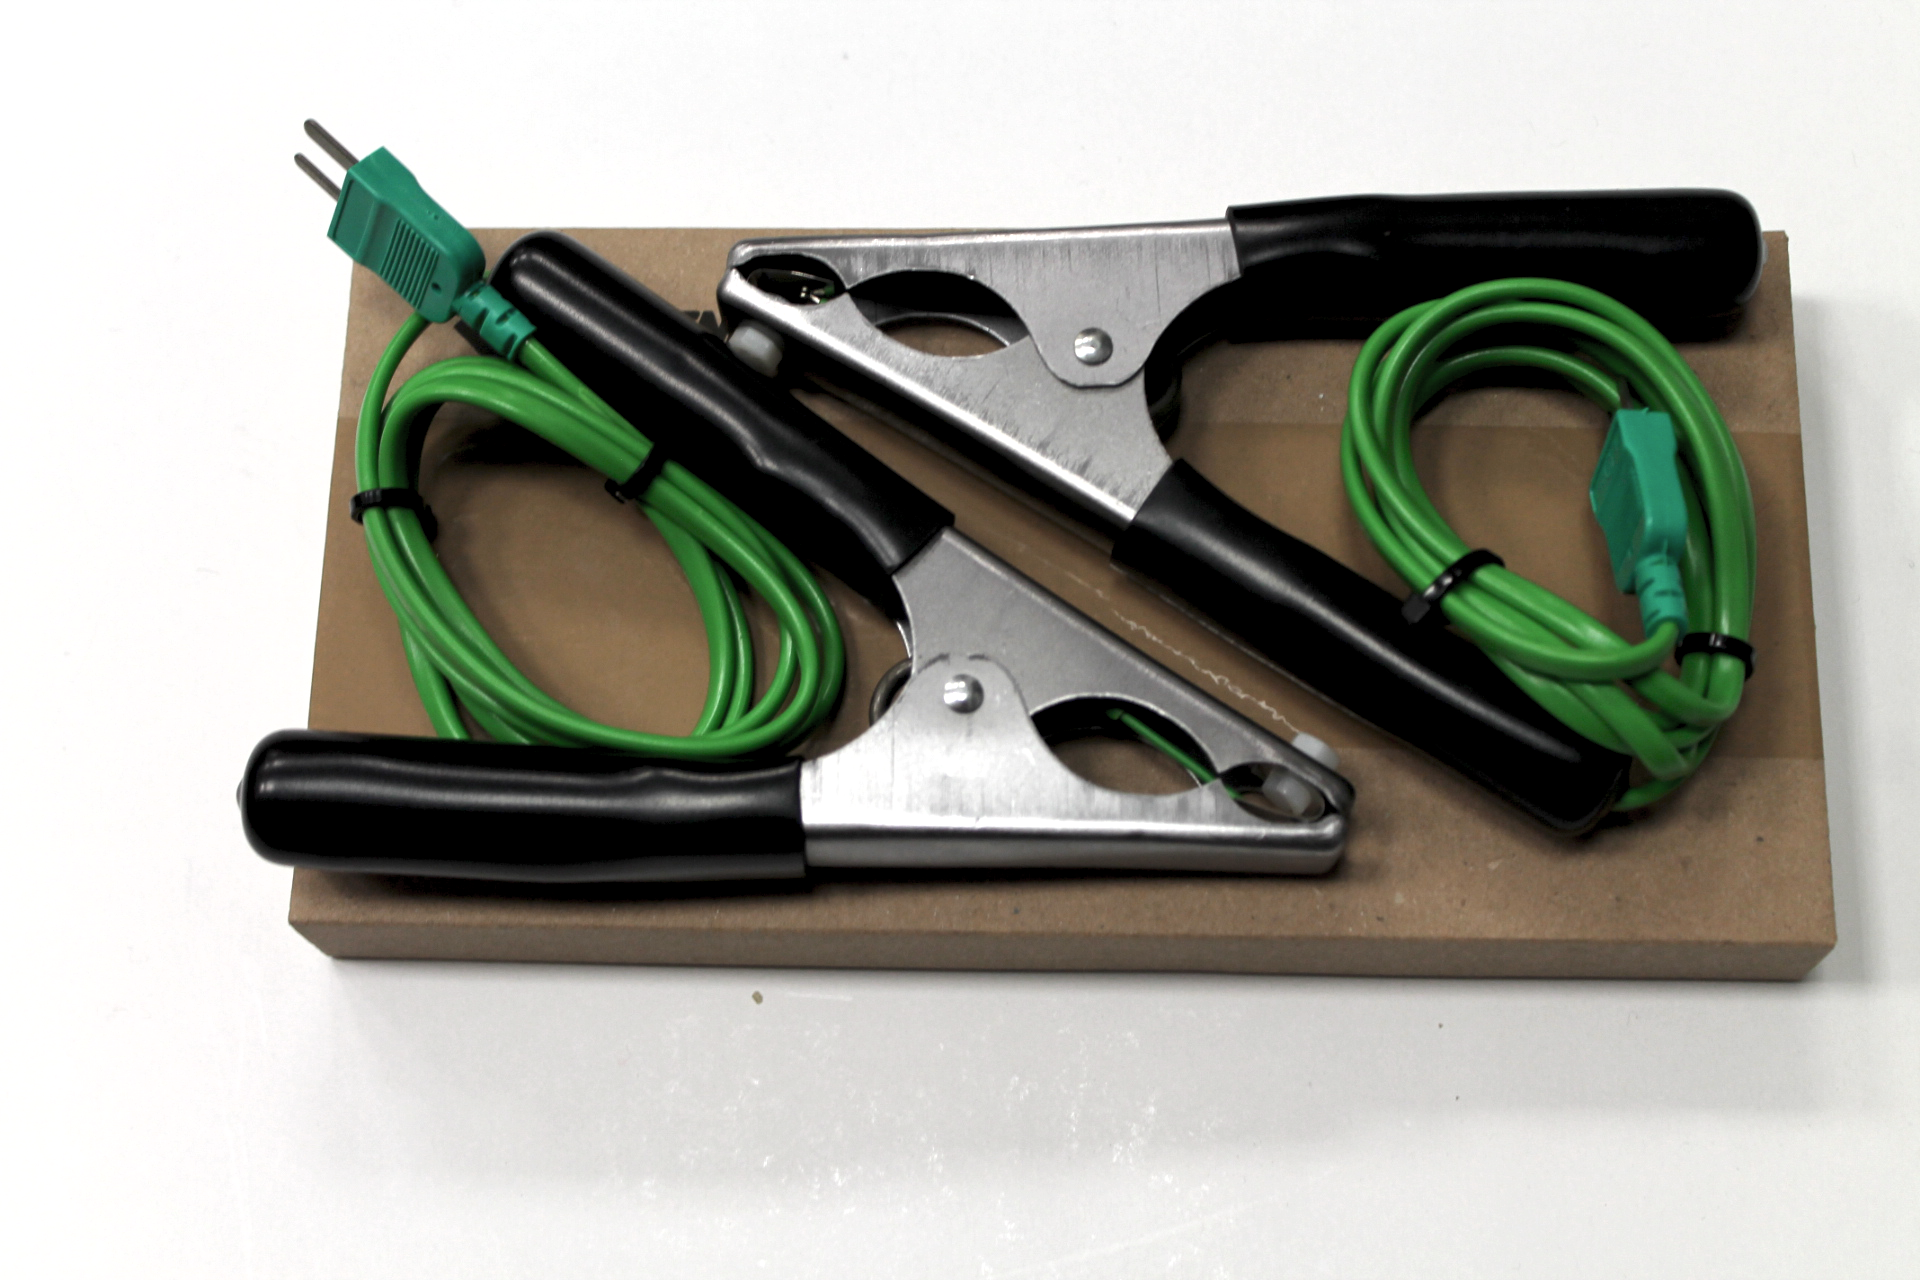 Hvac thermometer kit two clamp probes liquid probe